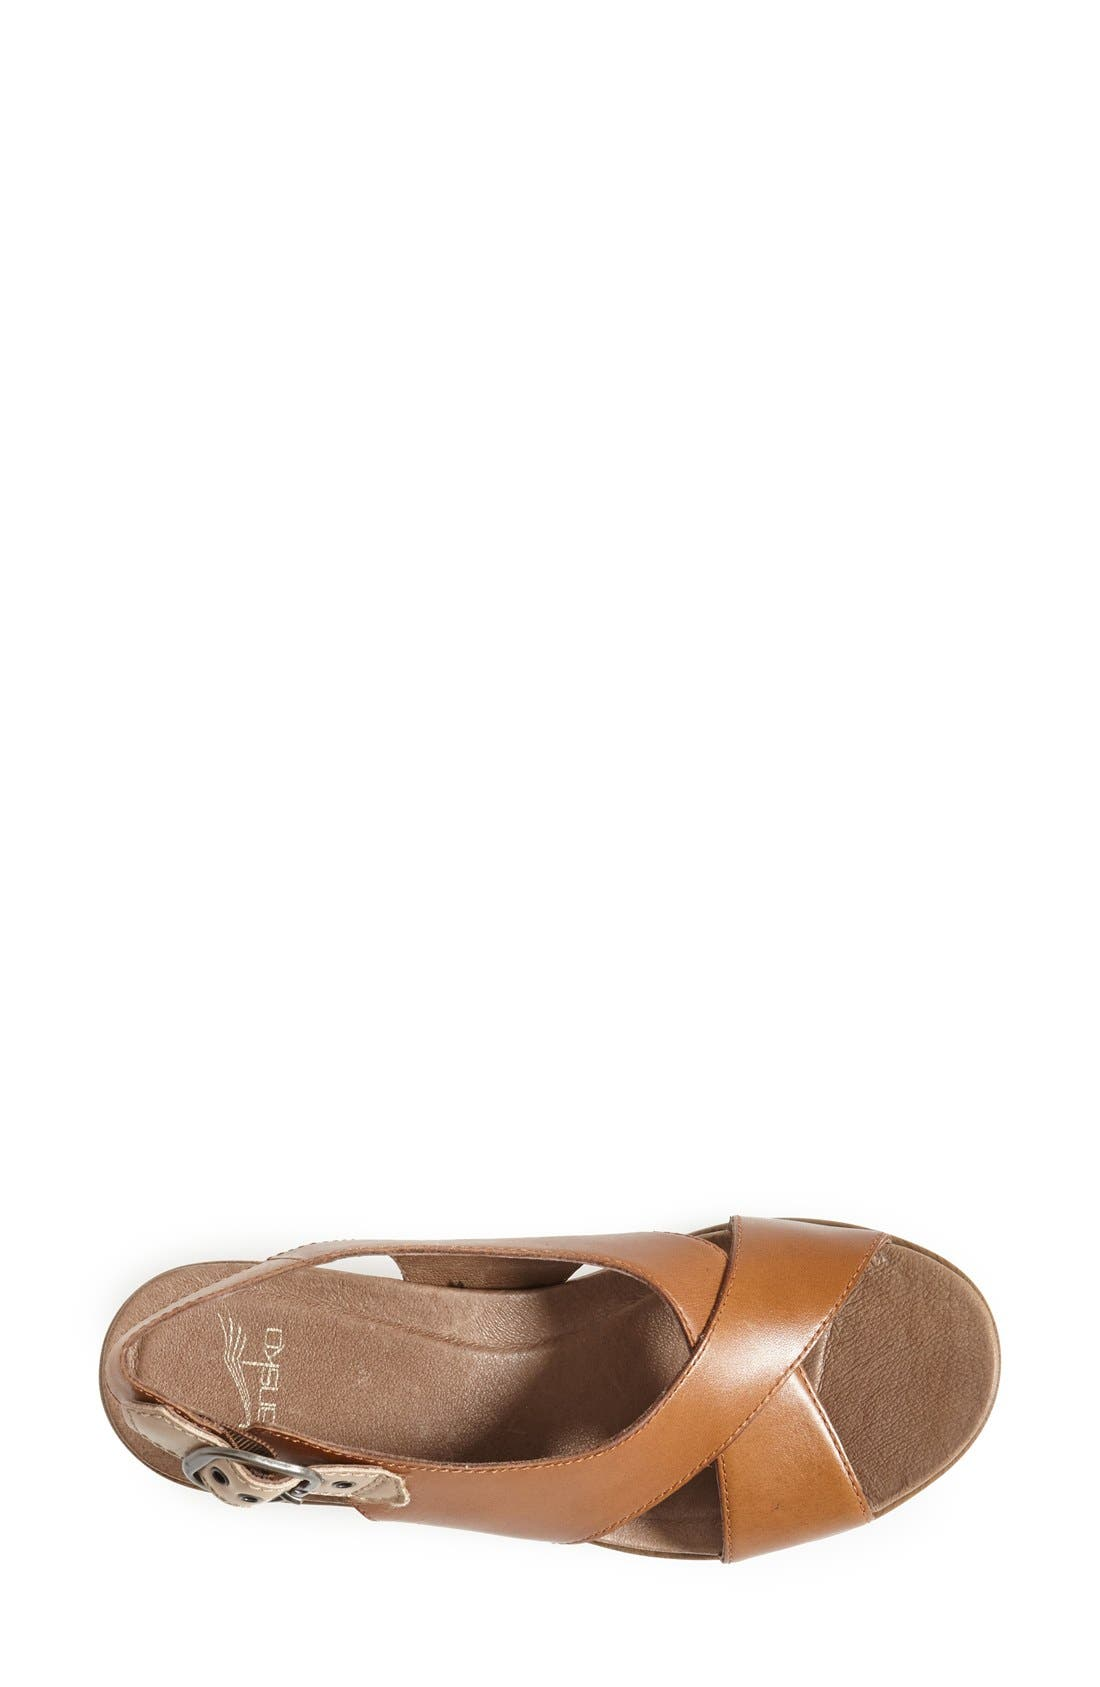 'Jacinda' Sandal,                             Alternate thumbnail 3, color,                             Caramel